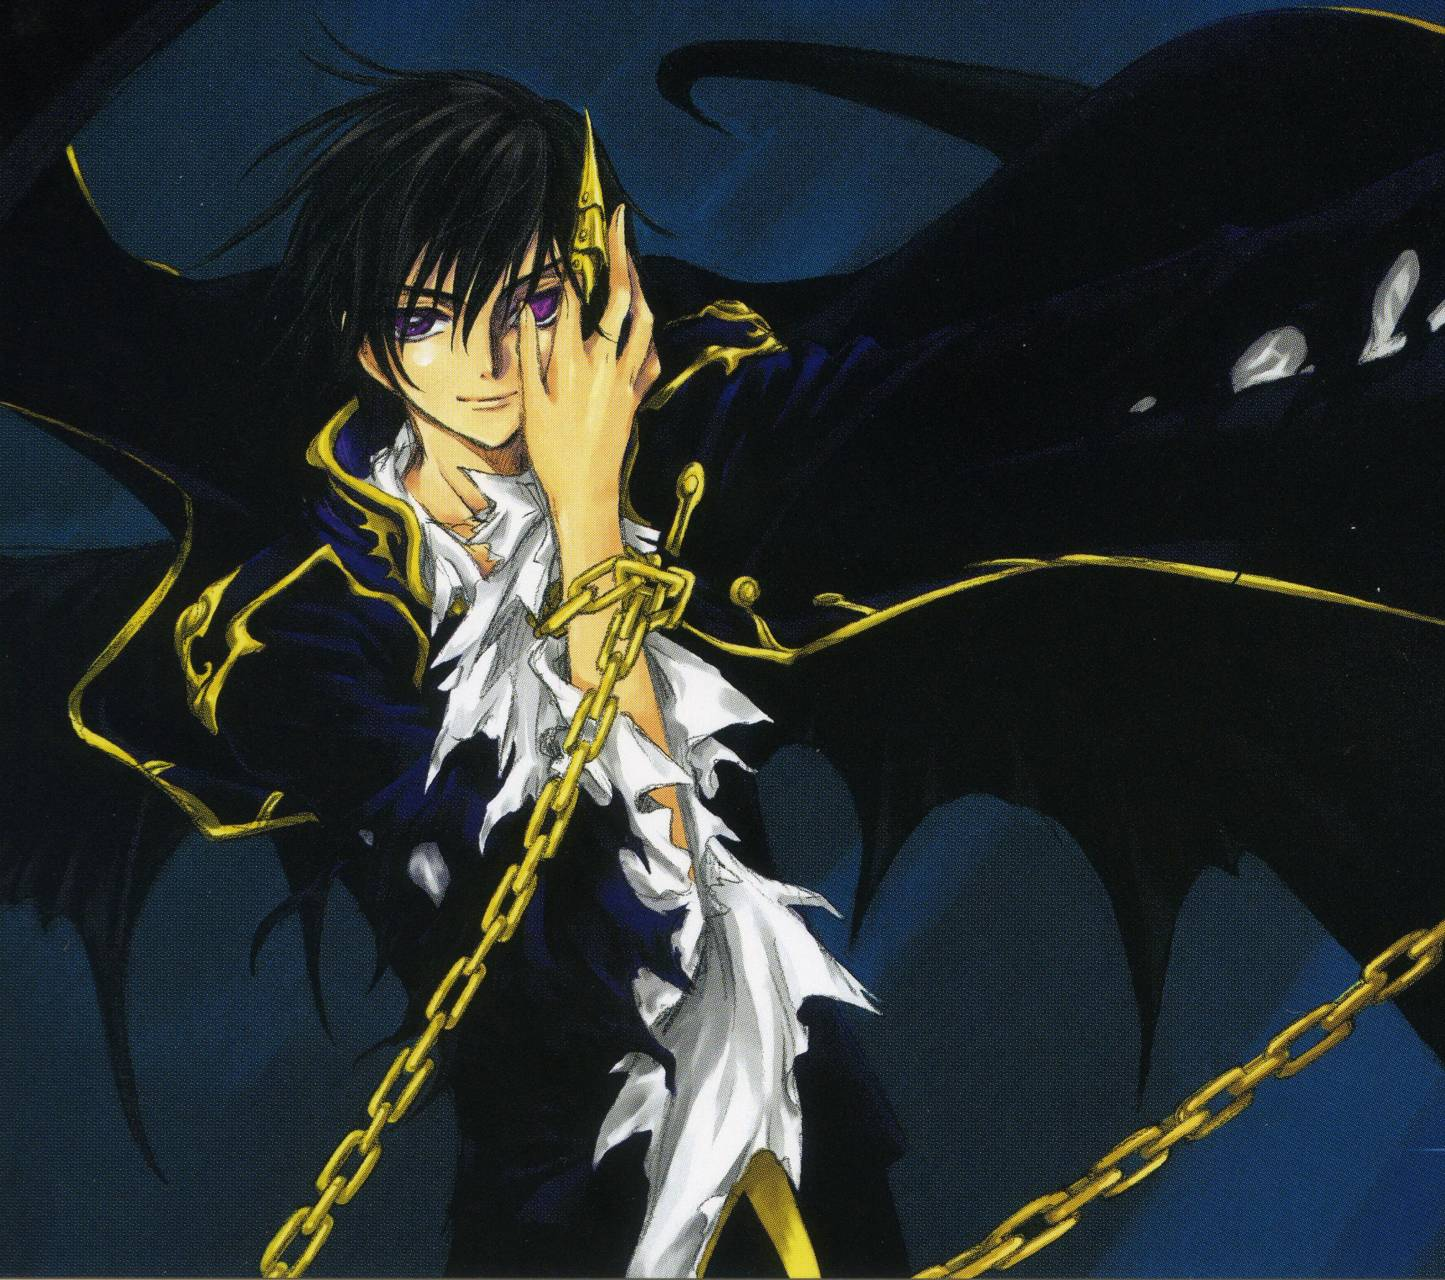 Lelouch Vi Britannia Wallpaper By Edudeluca 9c Free On Zedge